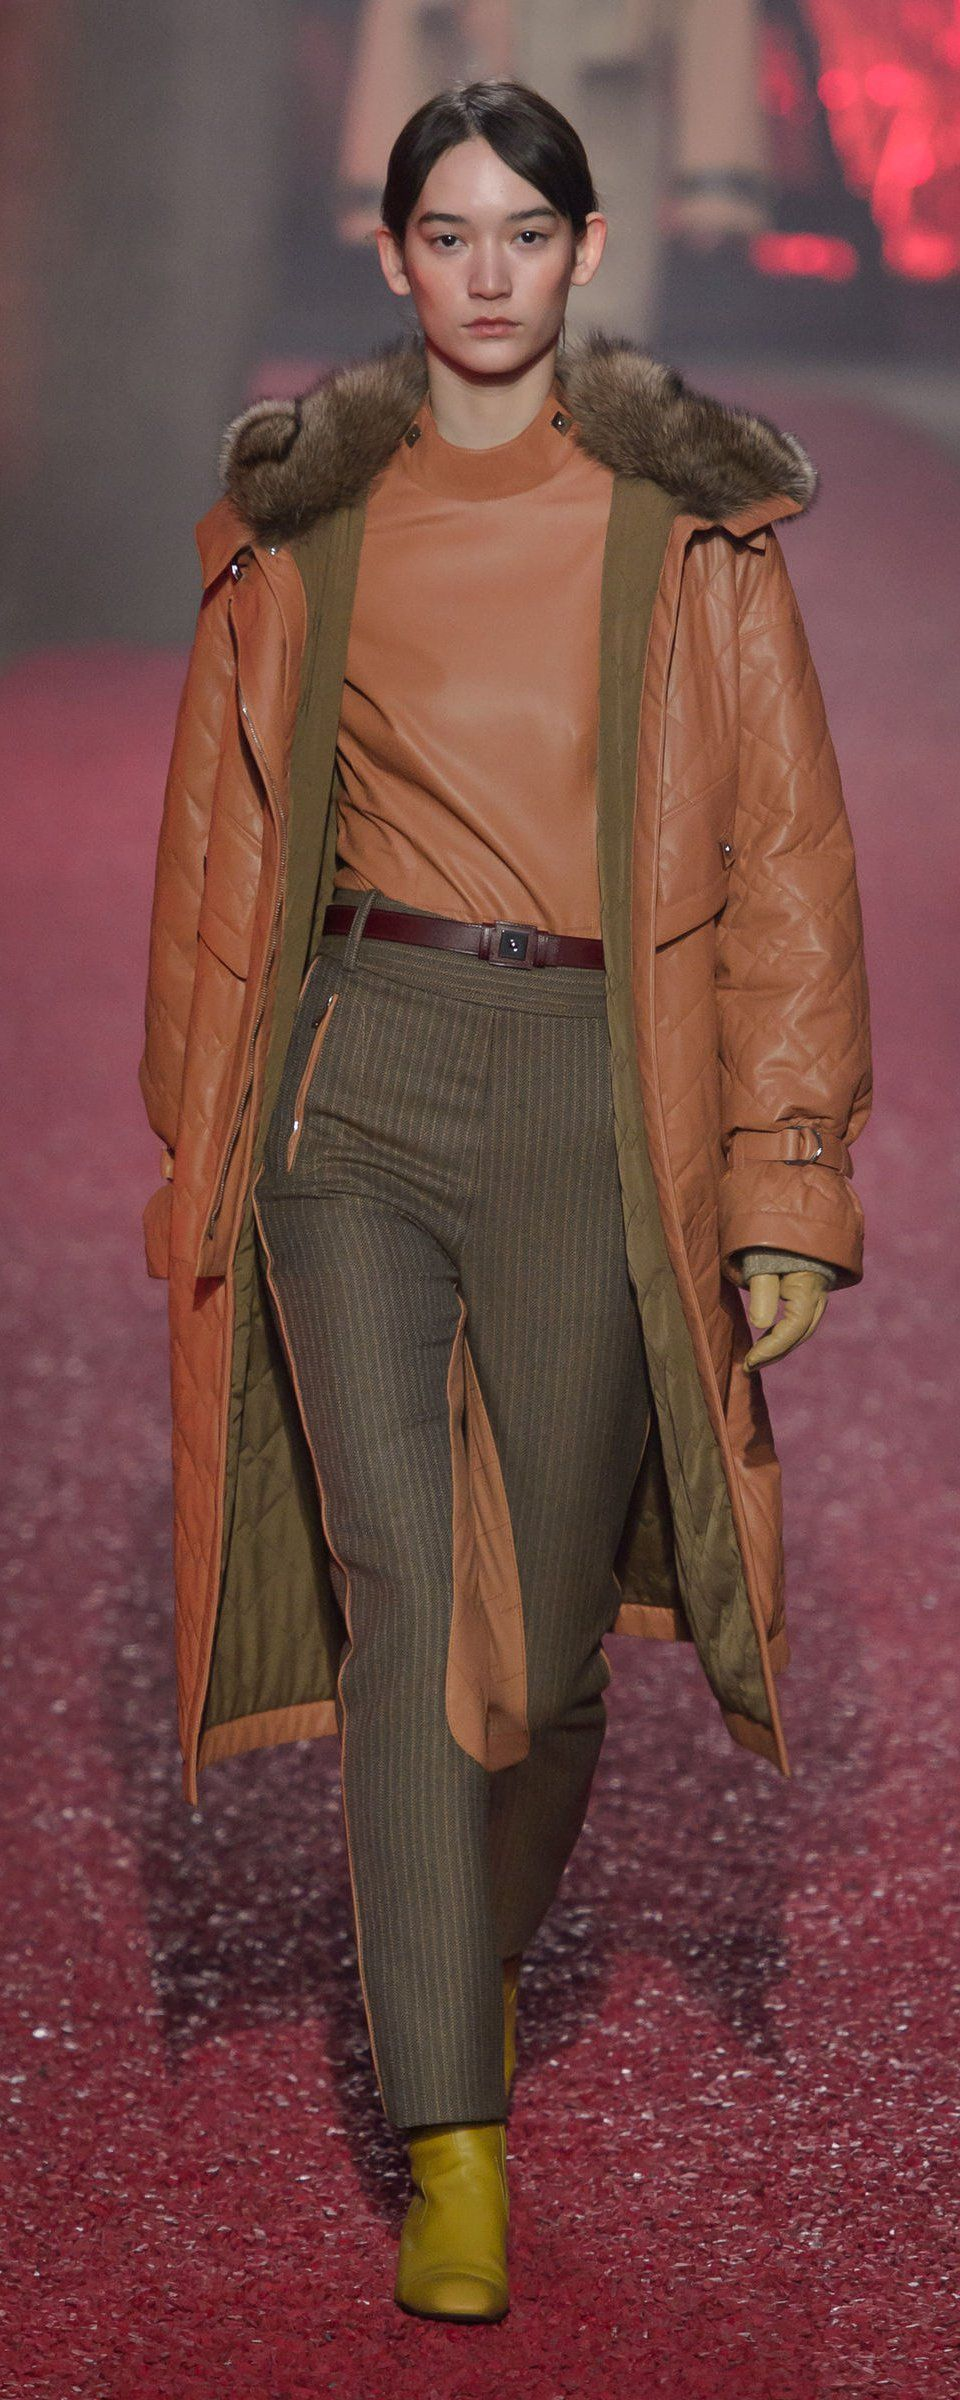 Hermes Fall-winter 2018-2019 - Ready-to-Wear   Casual   Chic   Pinterest   Fall  winter, Winter and Coats 675efaab29c